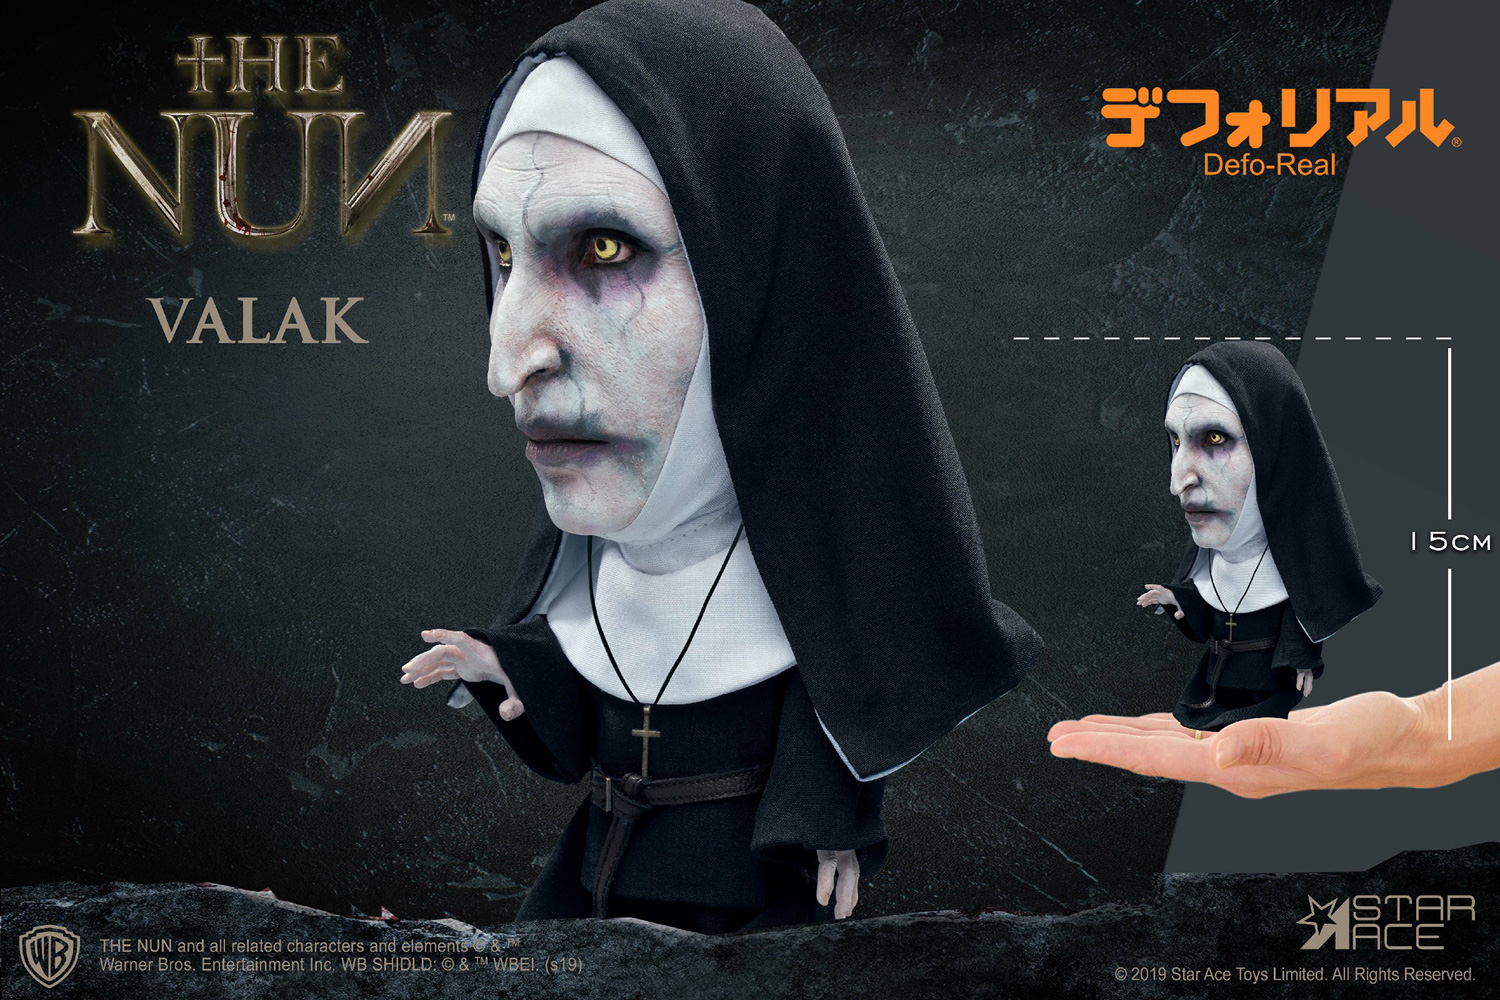 The Nun Defo Real Soft Vinyl Statue: Valak Closed Mouth  - Star Ace Toys Limited